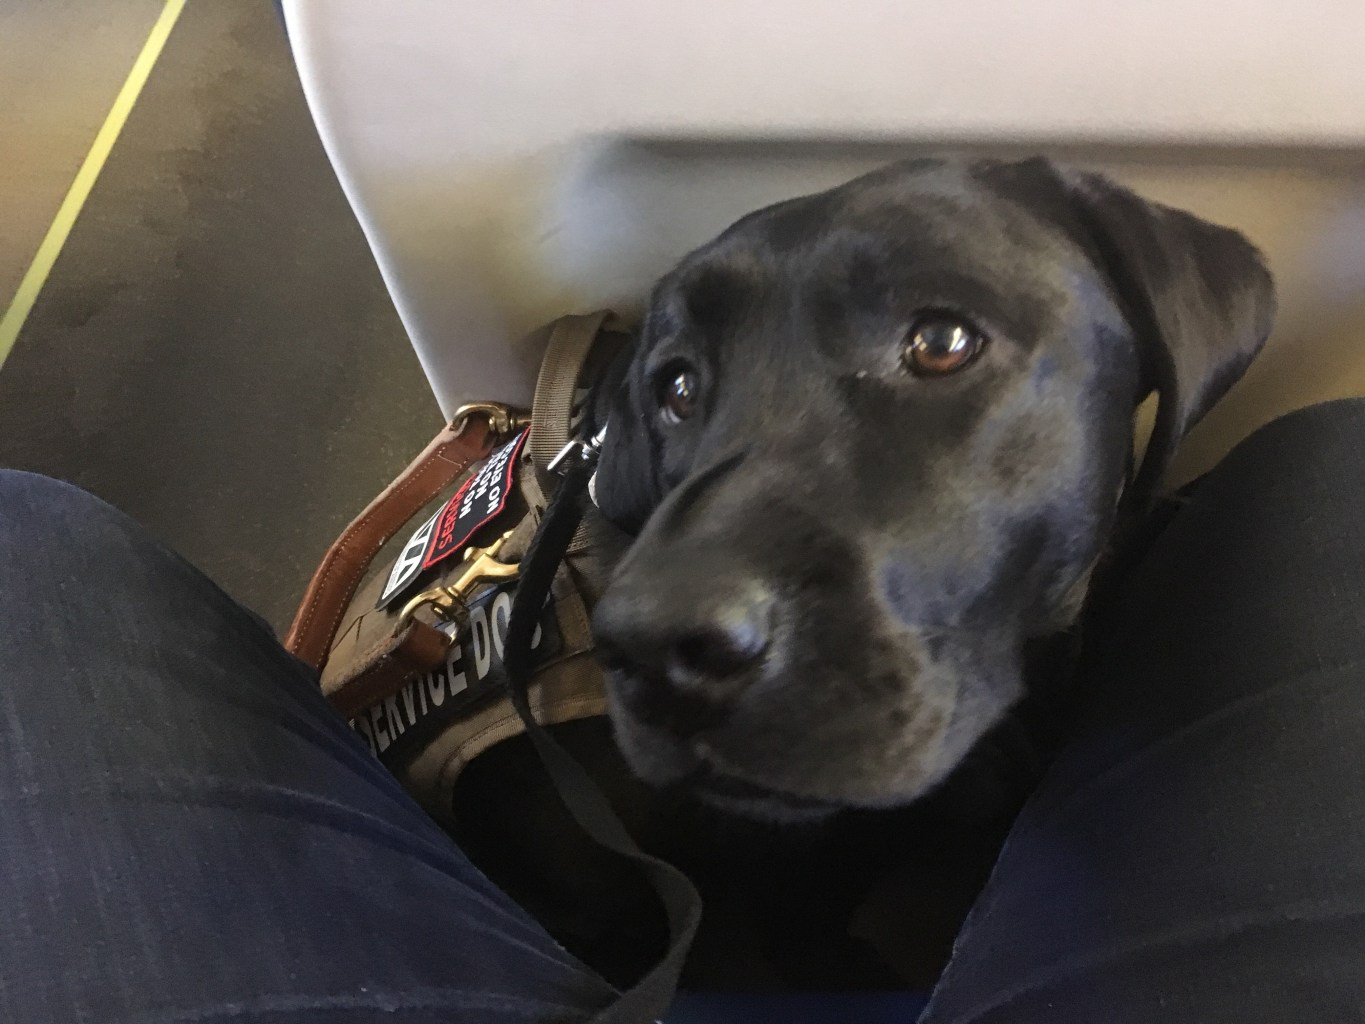 The service dog is seen perched on the floor by the author's legs in a train seat.